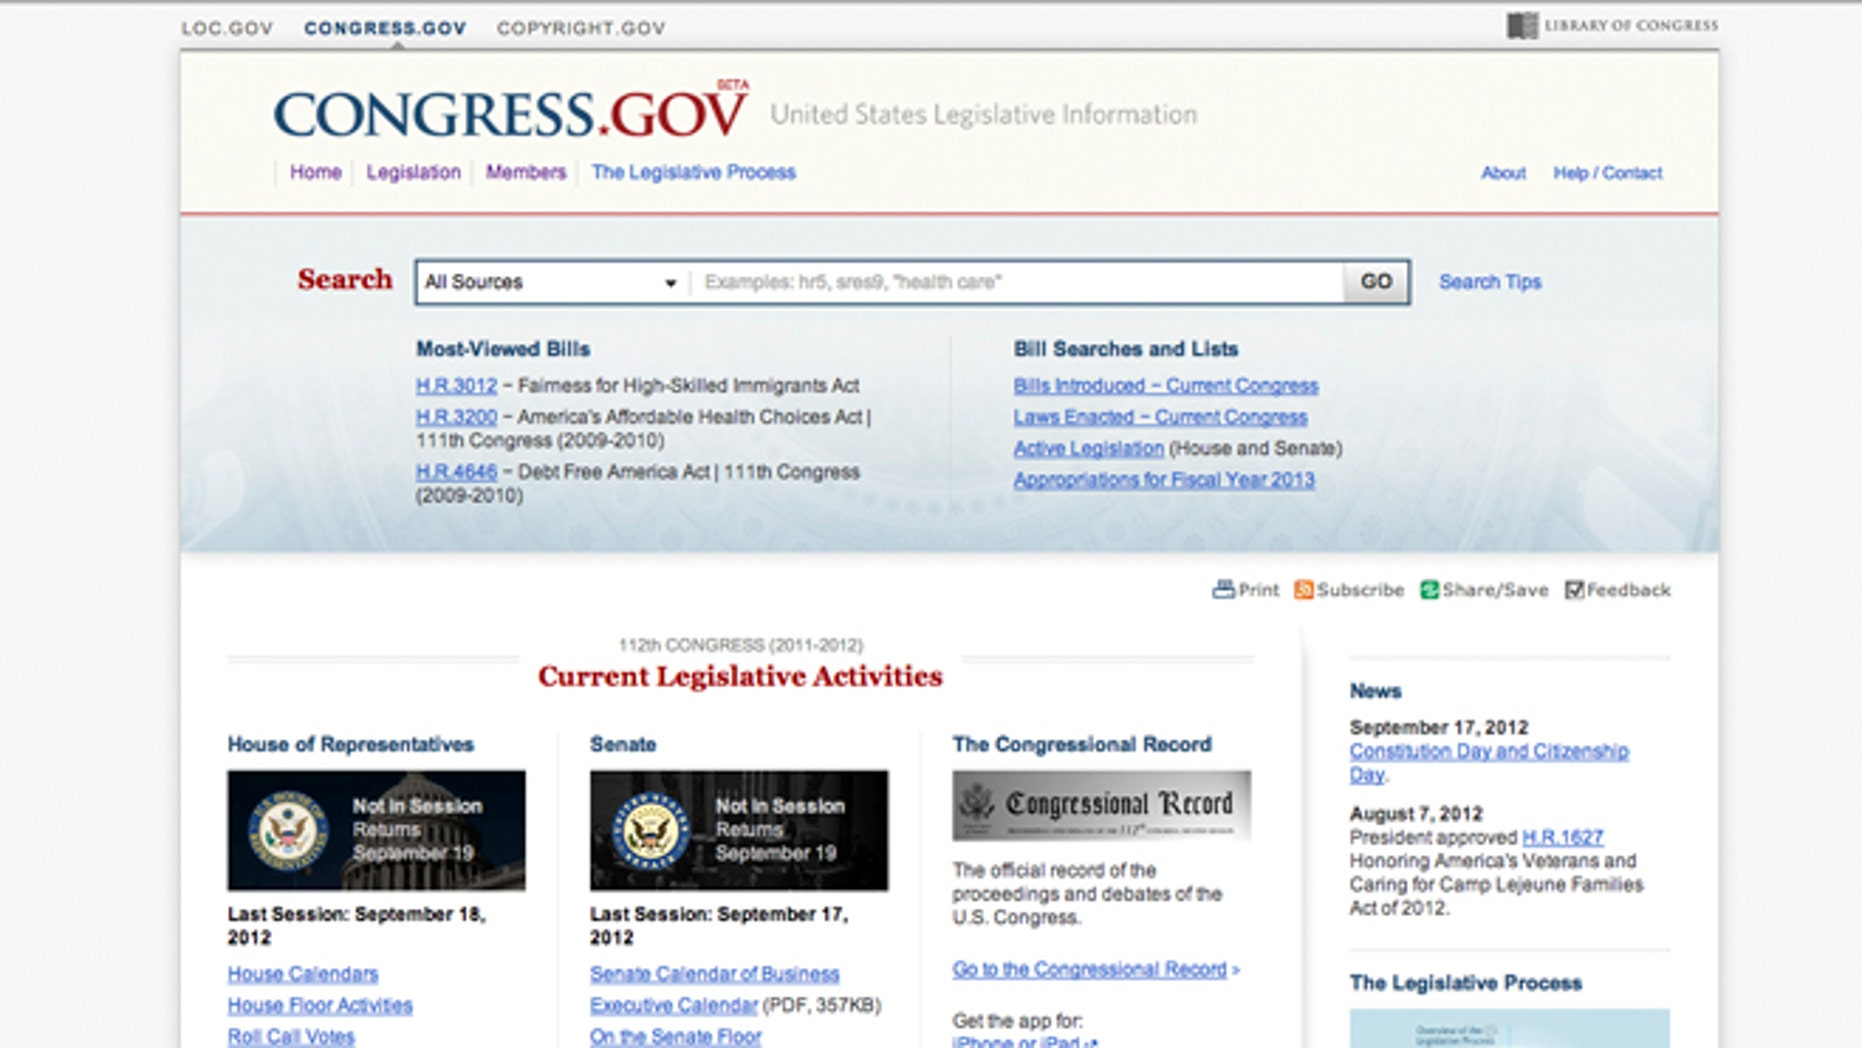 Sept. 19, 2012: The Library of Congress is unveiling the new website Congress.gov in beta form to eventually replace its THOMAS system. Its Congress first new search engine since THOMAS launched in 1995 when the Internet was in its infancy.